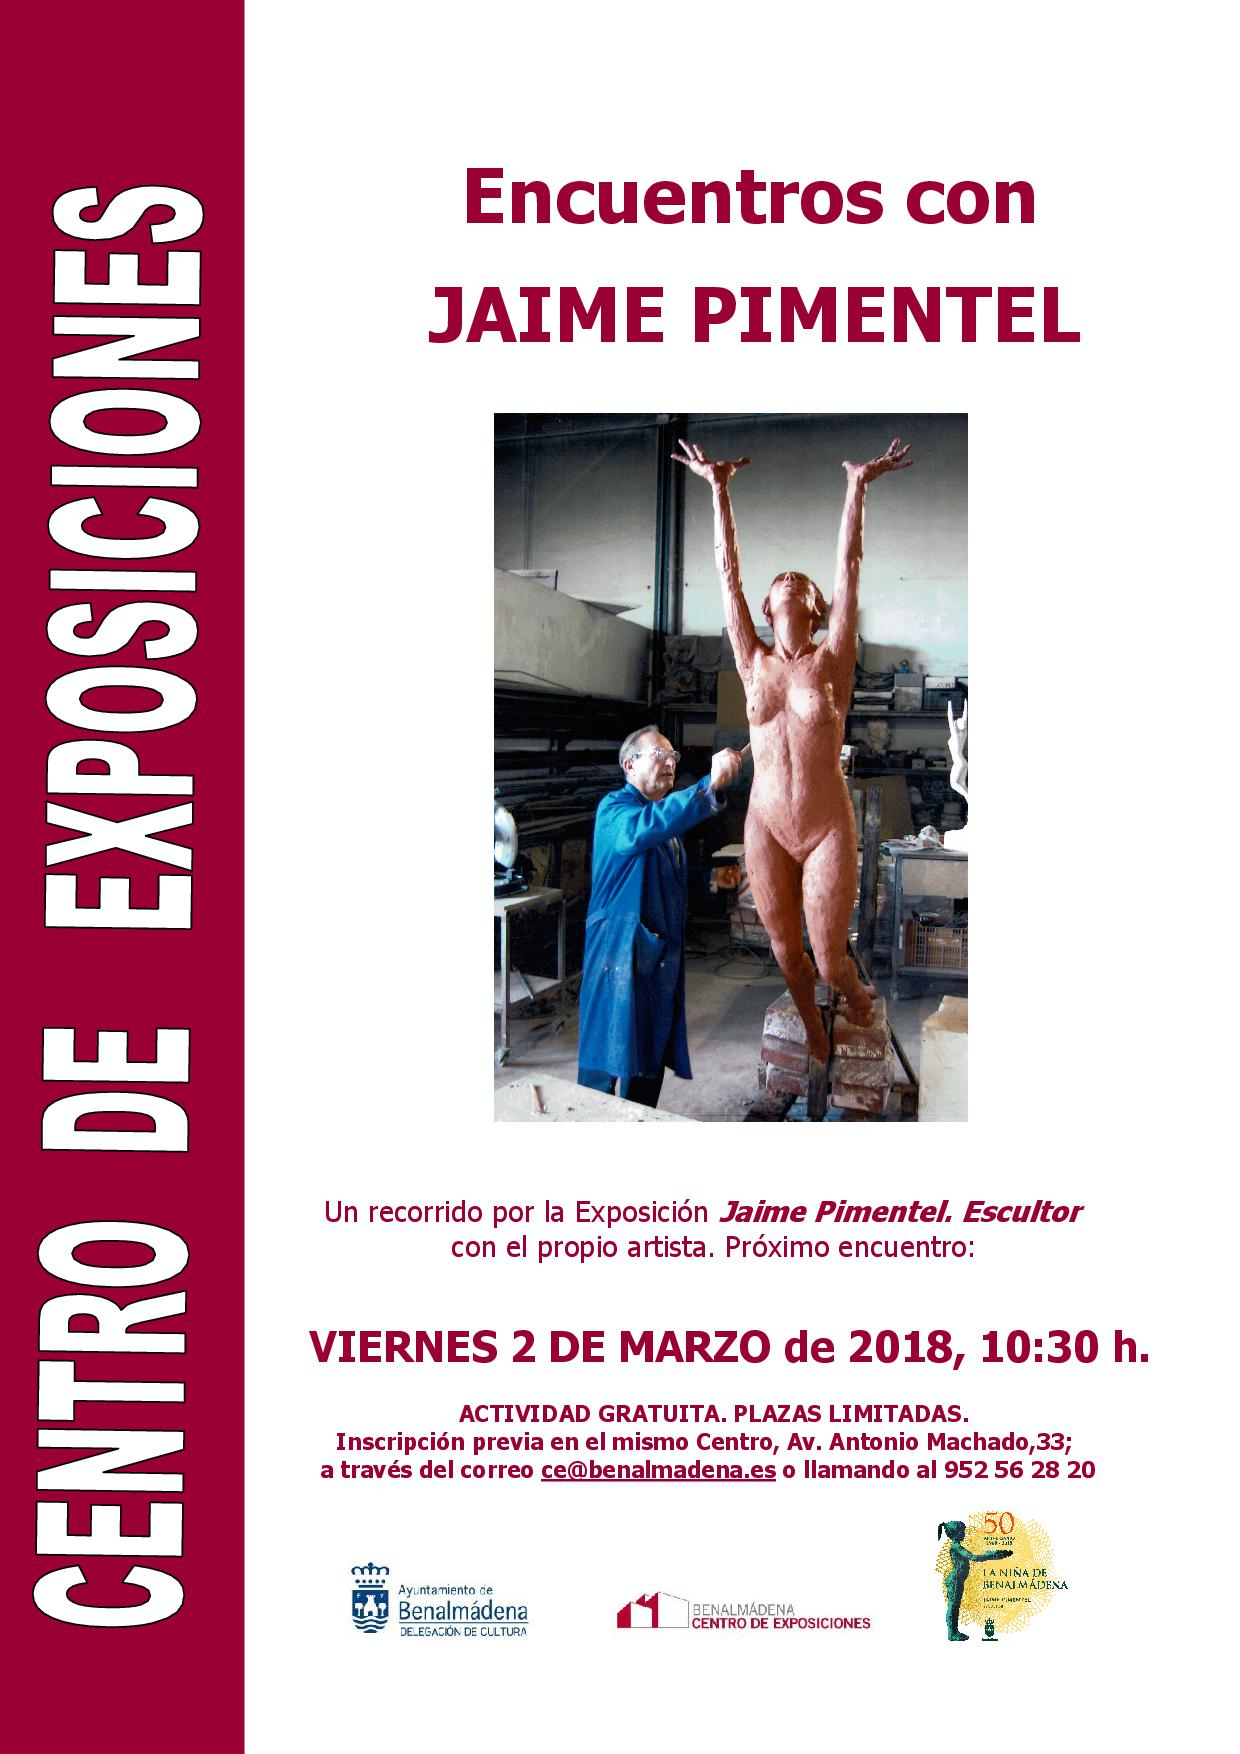 MEETING WITH JAIME PIMENTEL